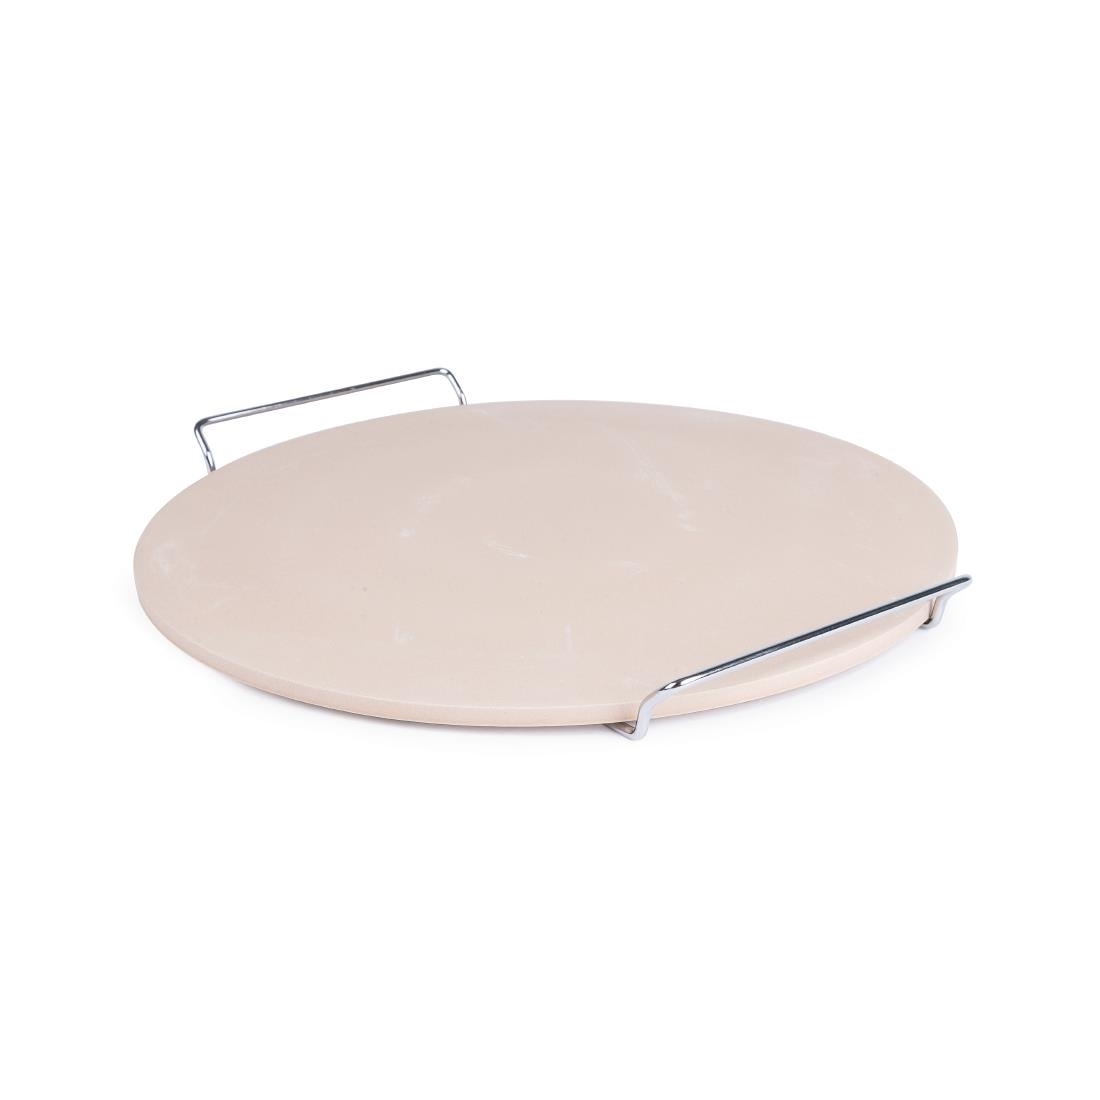 Image of Round Pizza Stone with Metal Serving Rack 15in